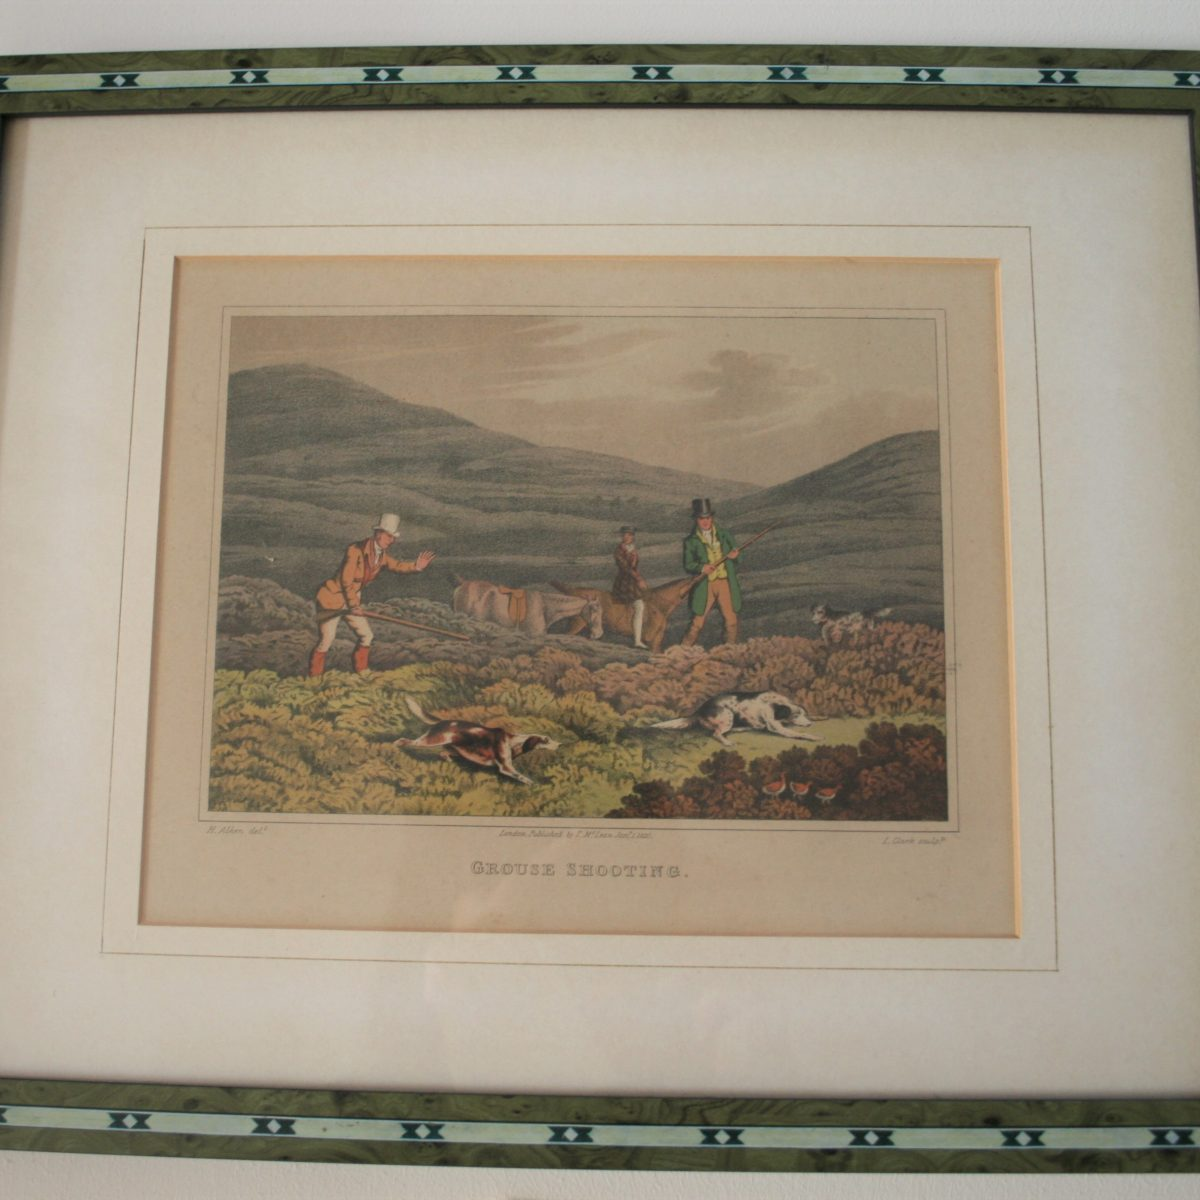 copperplate of grouse shooting/williamsantiques